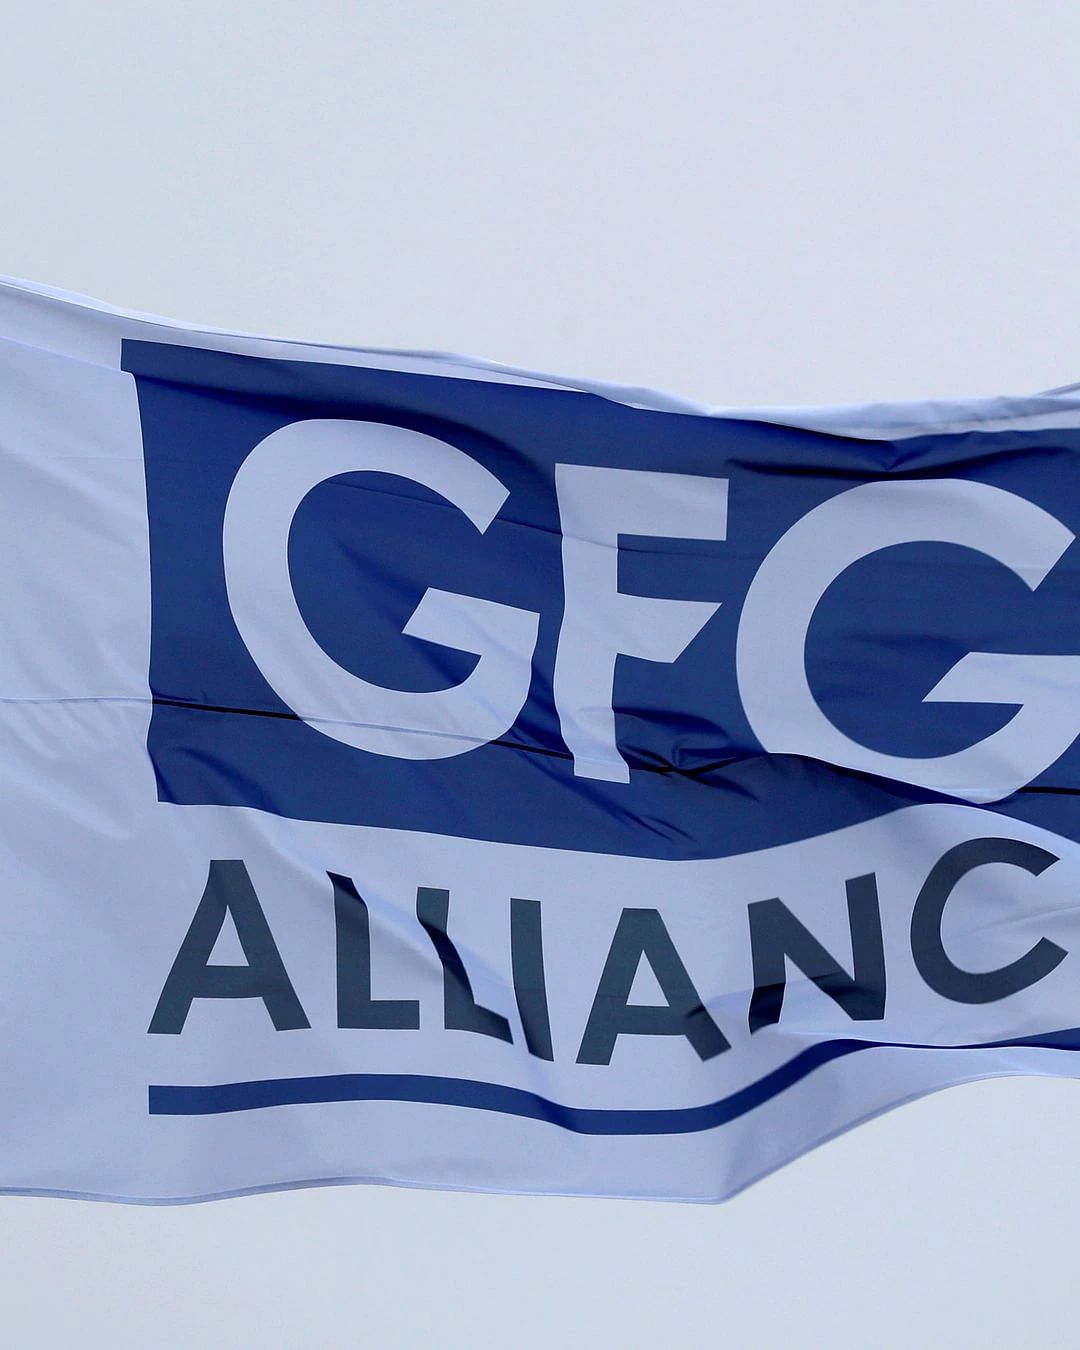 GFG Alliance Continues to Stabilise & Move Business Forward